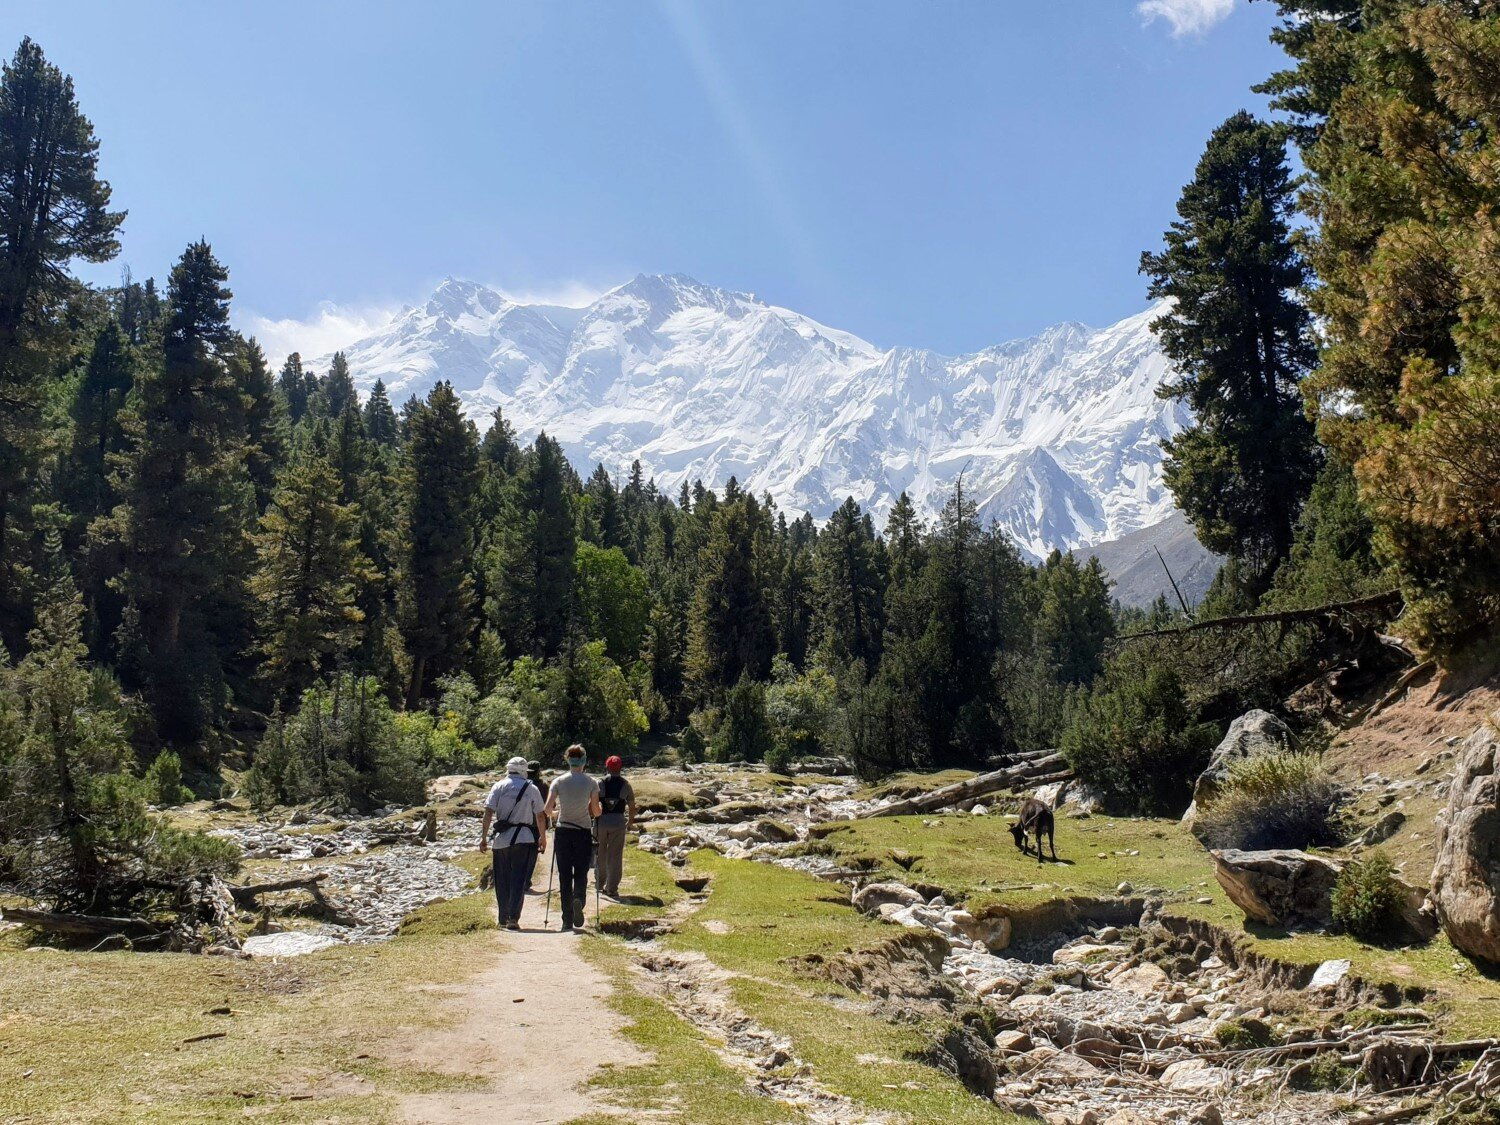 The path to Beyal Camp offers some stunning glimpses of Nanga Parbat in the distance.